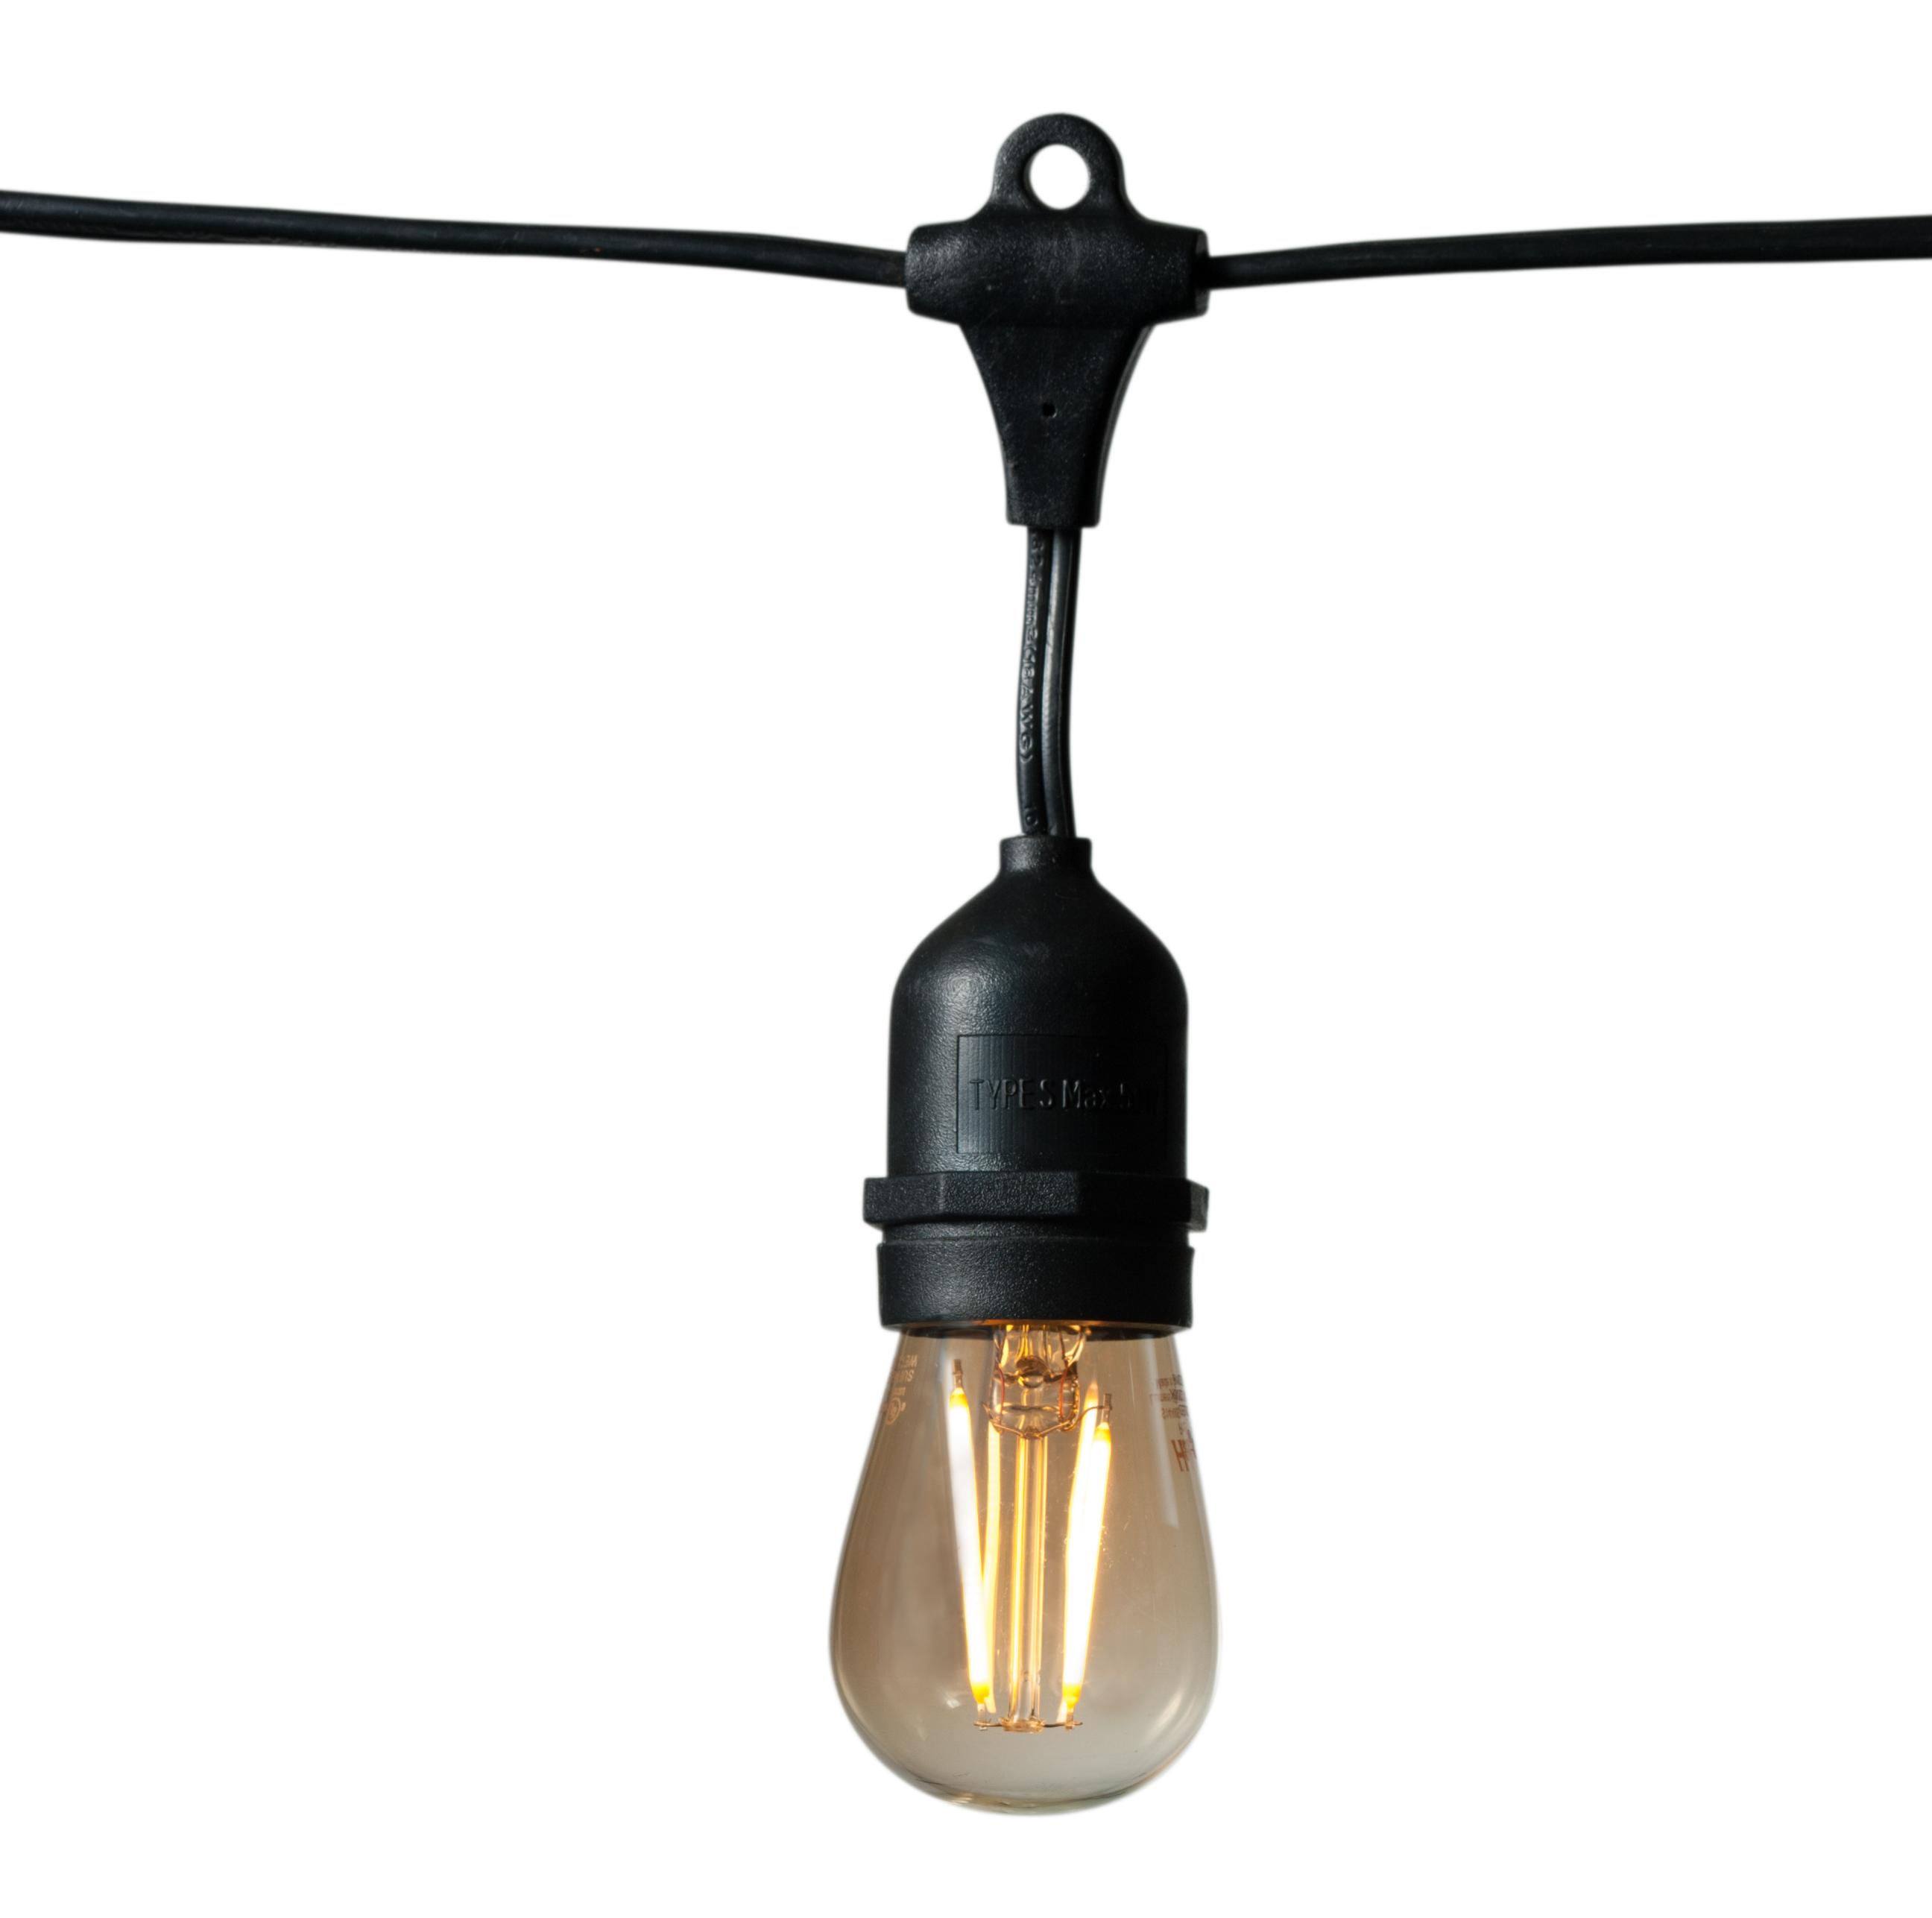 DSL/26124M/2G-BK 99603 Decorative Strand Lighting 26ft long, (12) E26 sockets, 4in drops, 2-wire with 8A fuse